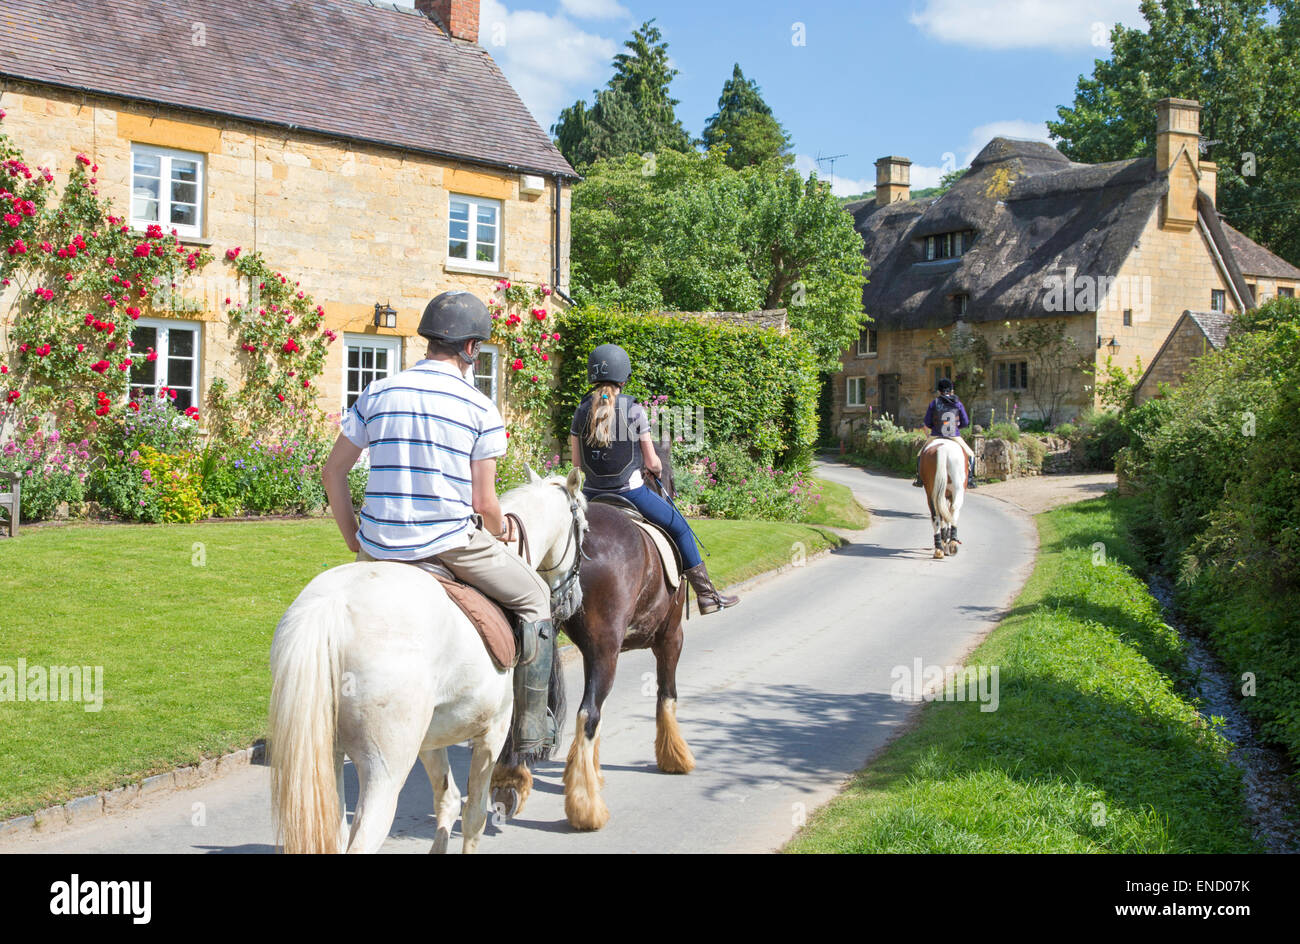 Horse riding in the Cotswold village of Stanton, Gloucestershire, England, UK - Stock Image